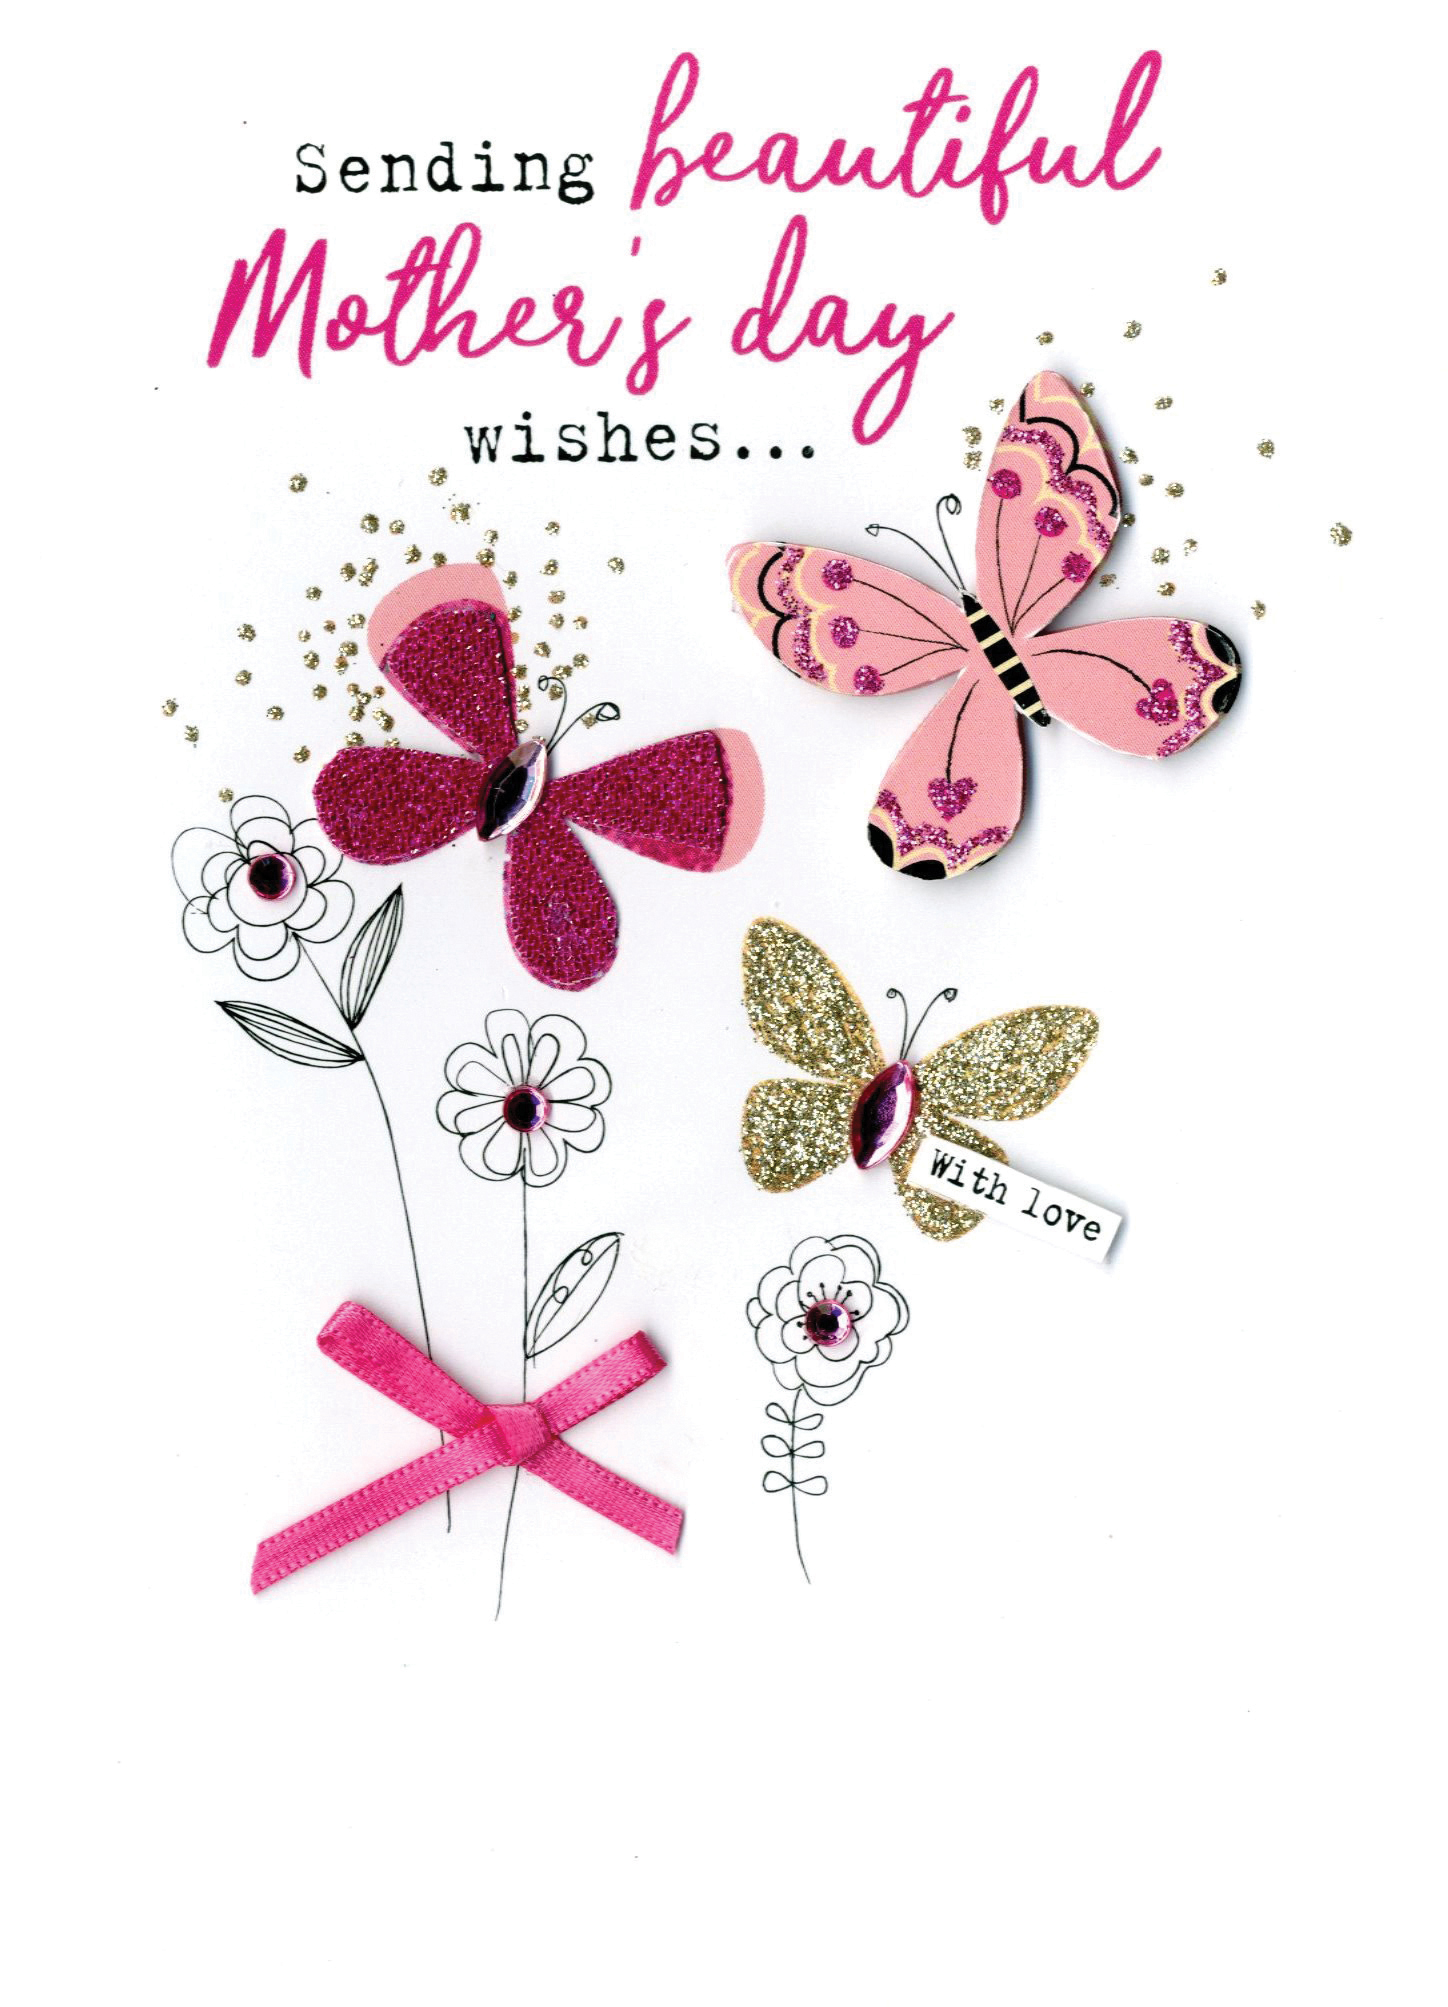 Mother's Day Card Beautiful Mothers Day Wishes   Cards